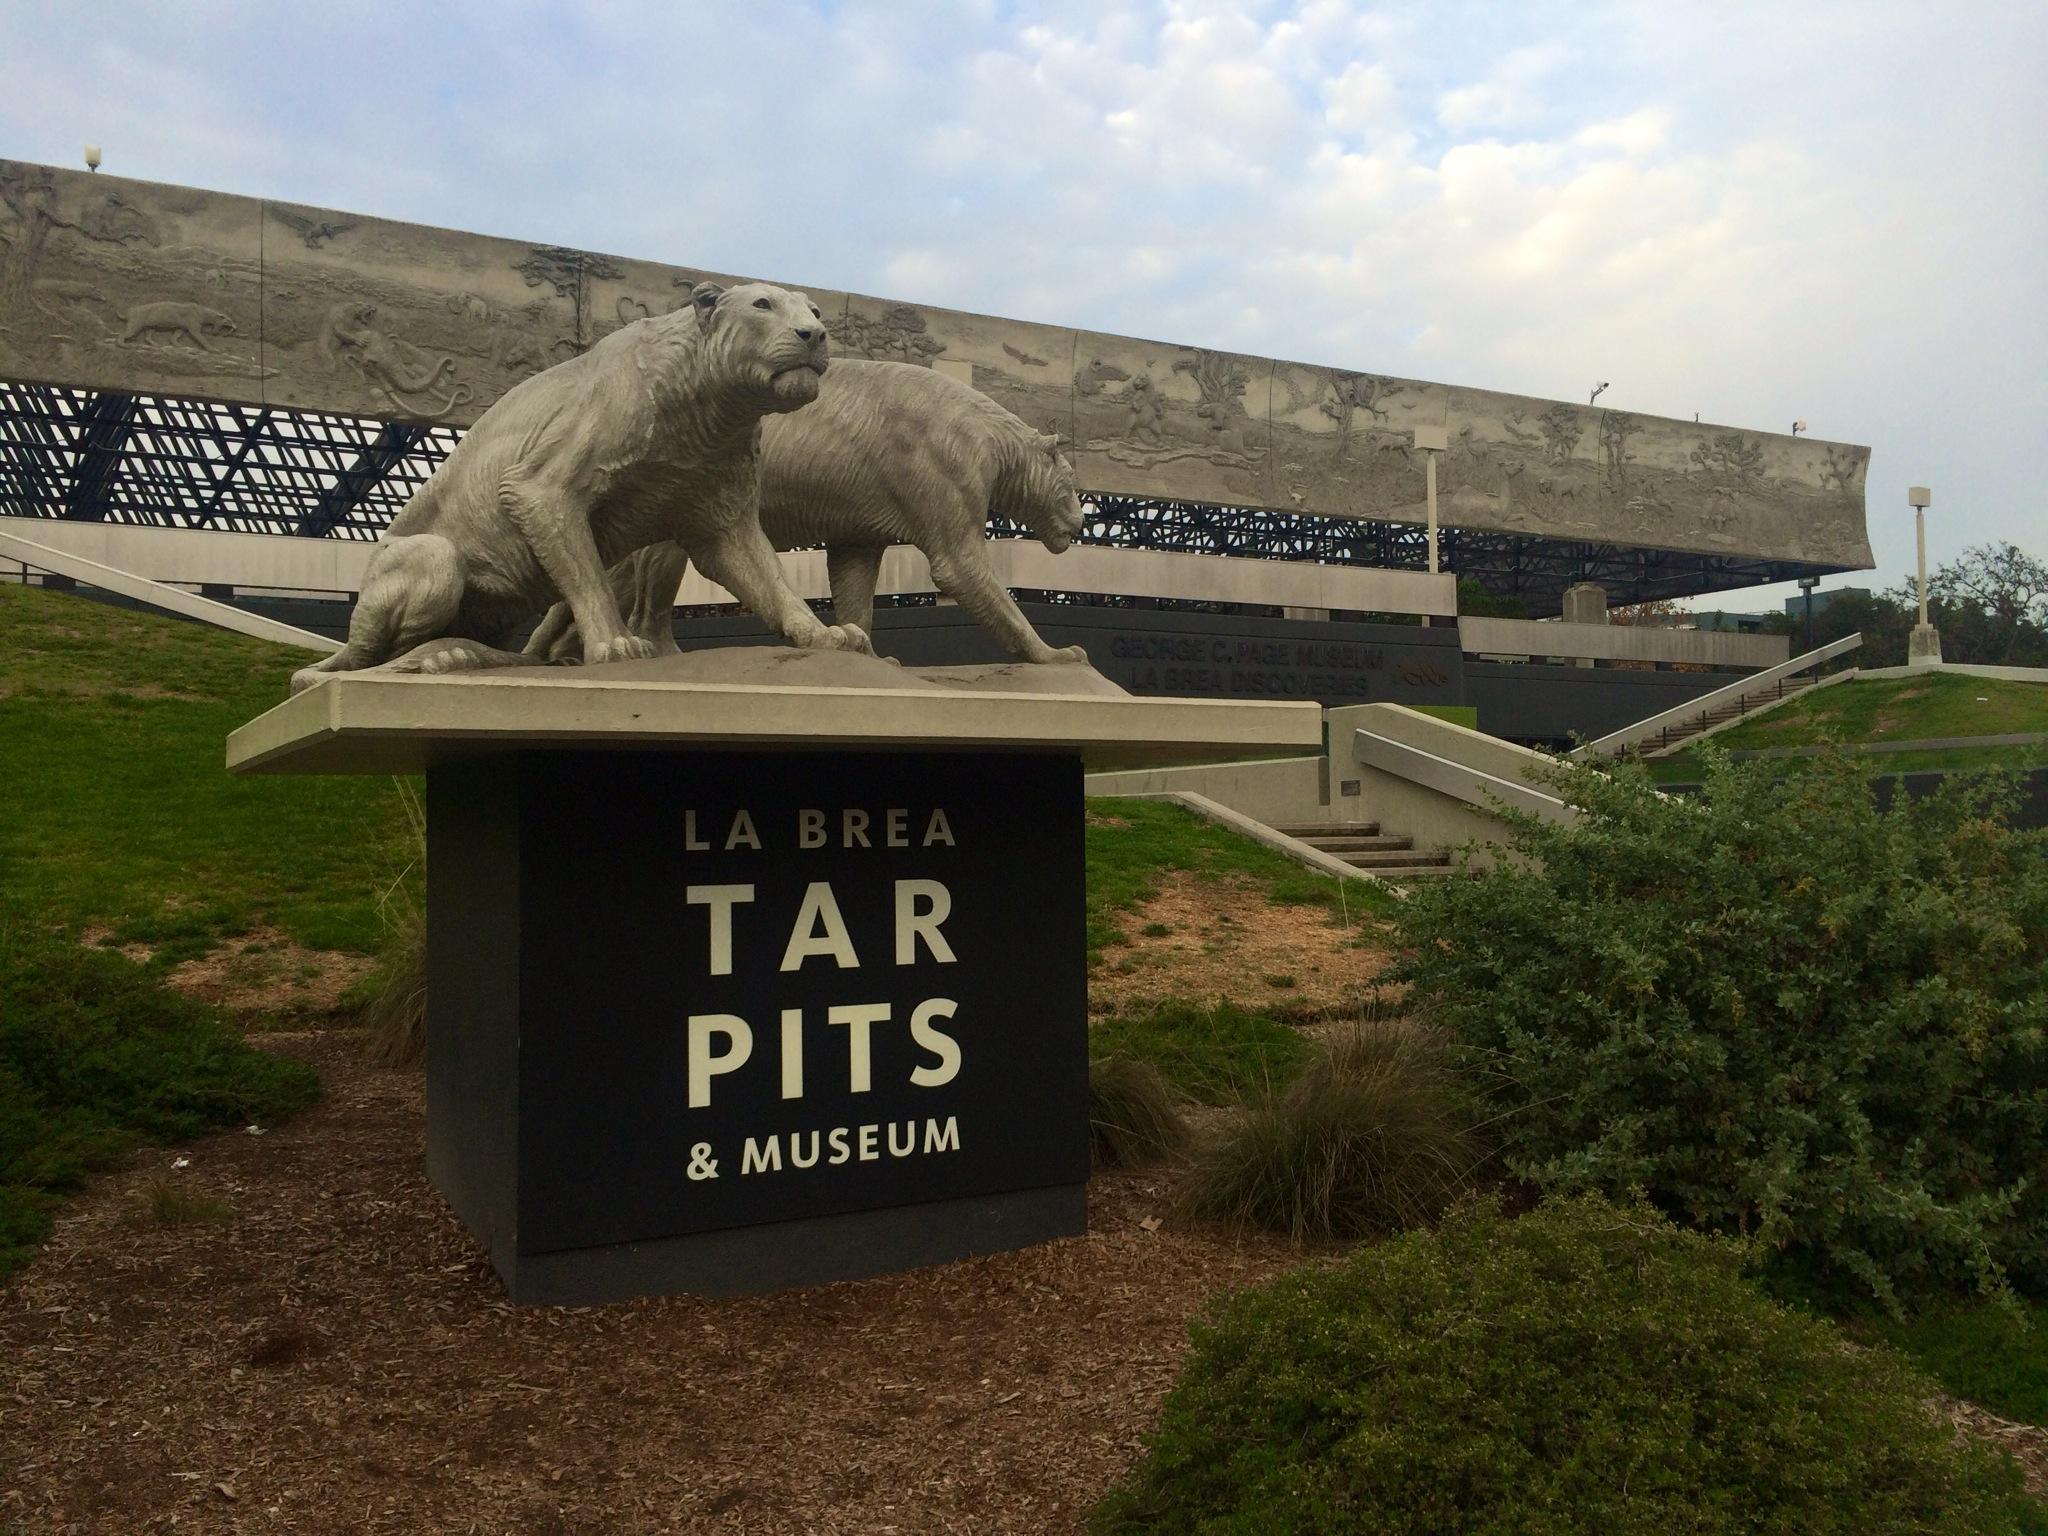 a history and the geology of la brea tar pits in california Asphalt at the la brea tar pits in los angeles -- a geologic seep that california turkey the la brea tar pits museum history museum of la.